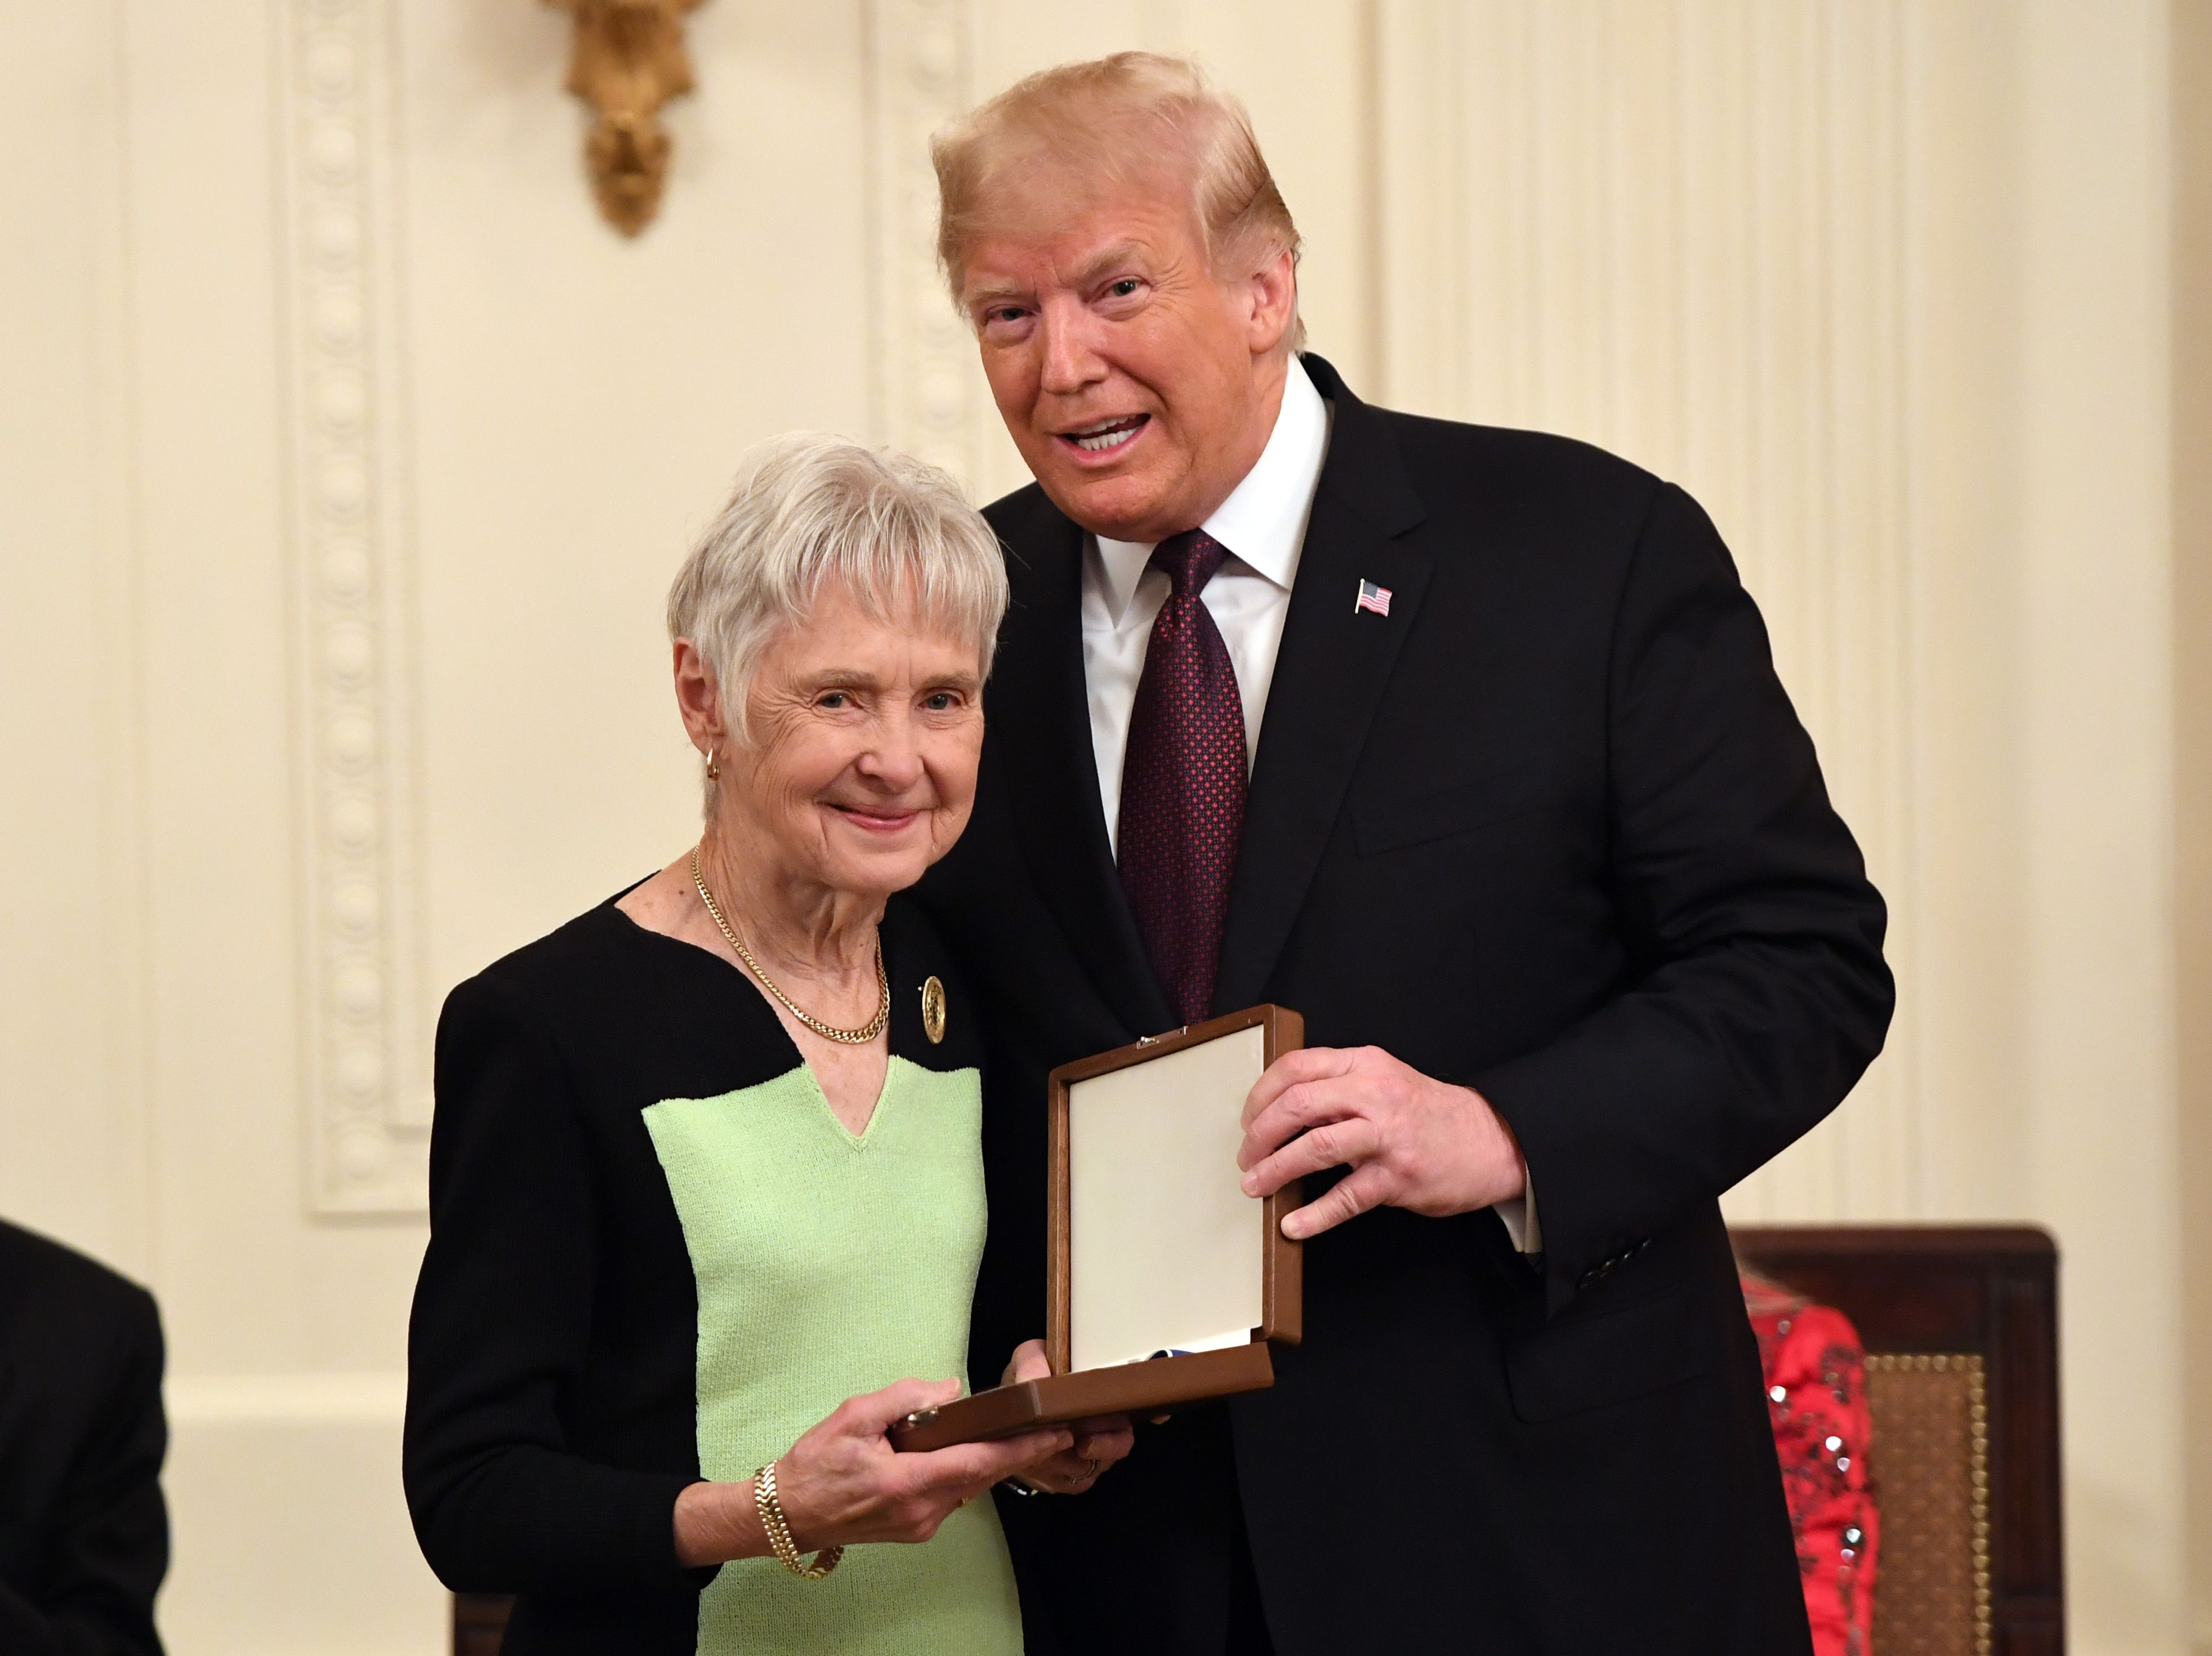 President Donald Trump awards the presidential Medal of Freedom to the late Supreme Court Justice Antonin Scalia. His wife Maureen Scalia accepted the commendation. (Saul Loeb/AFP/Getty Images)